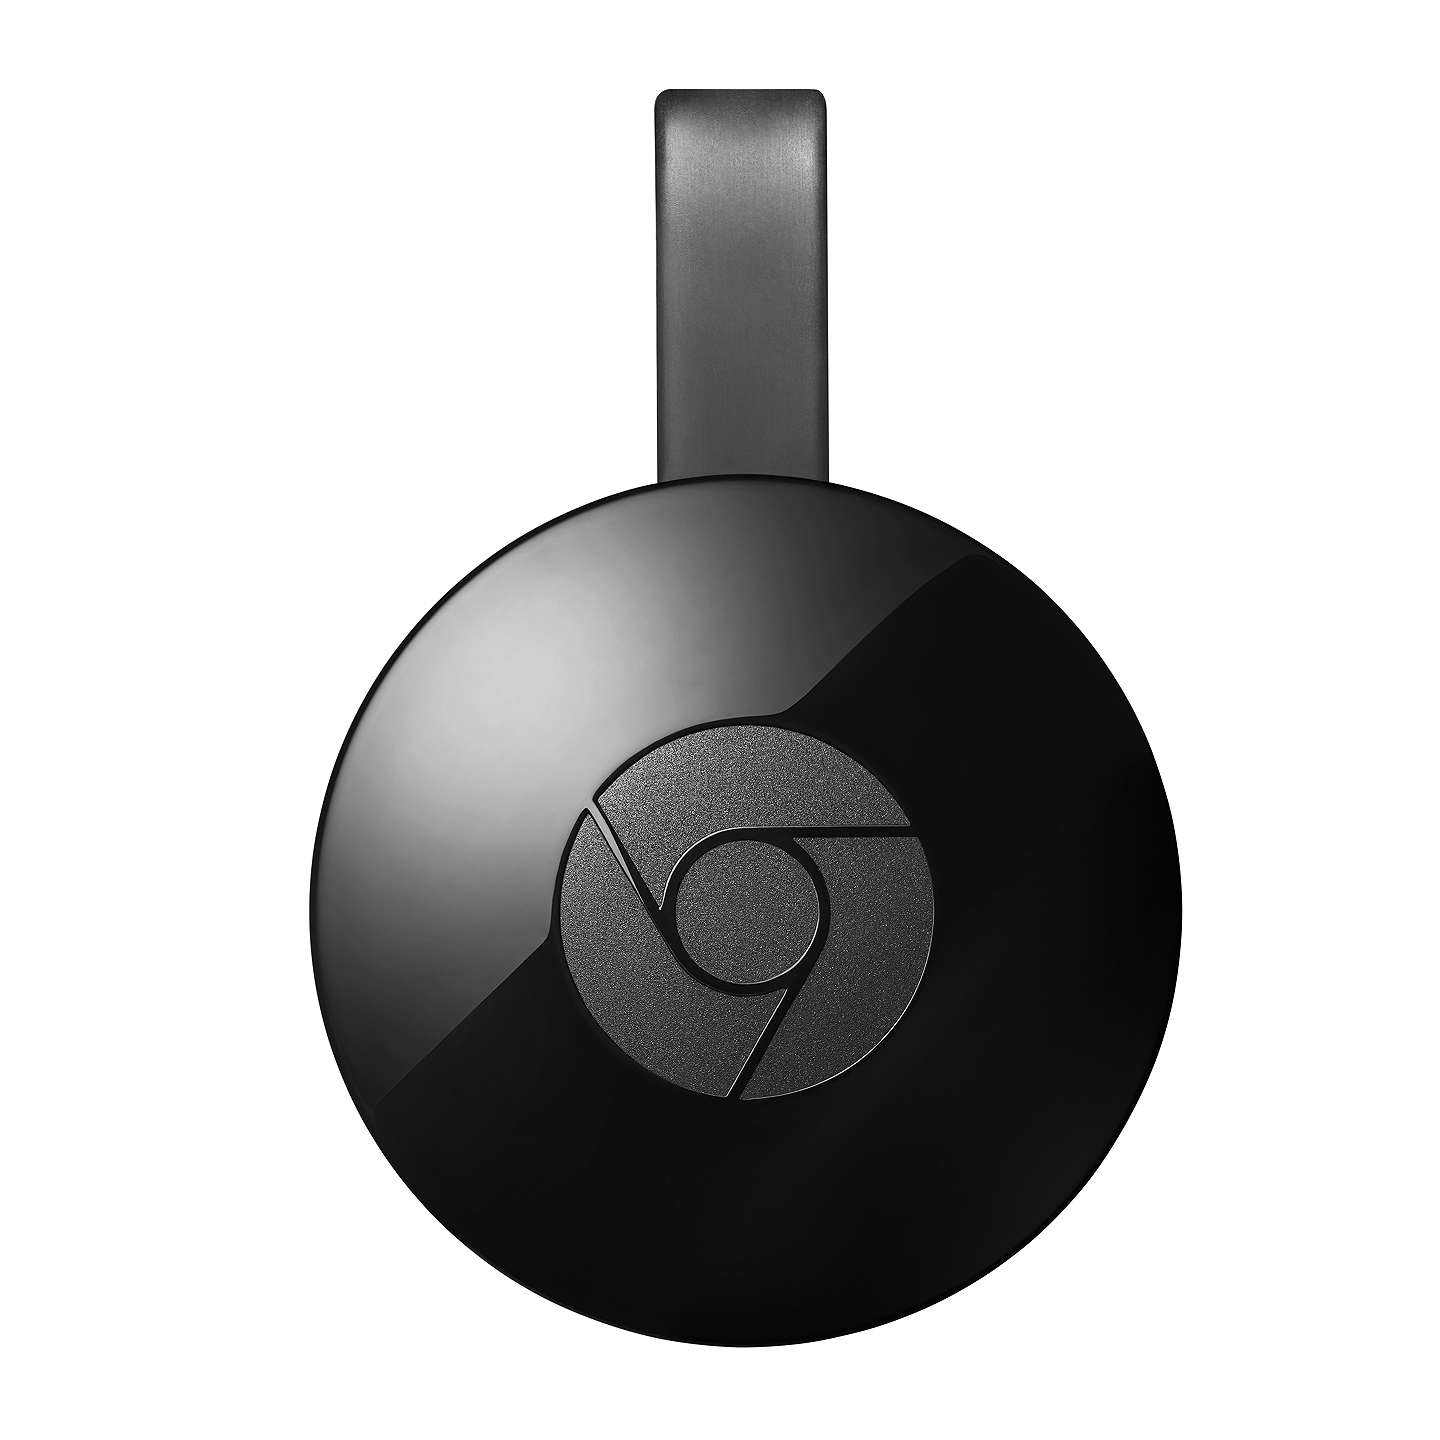 BuyGoogle Chromecast Online at johnlewis.com